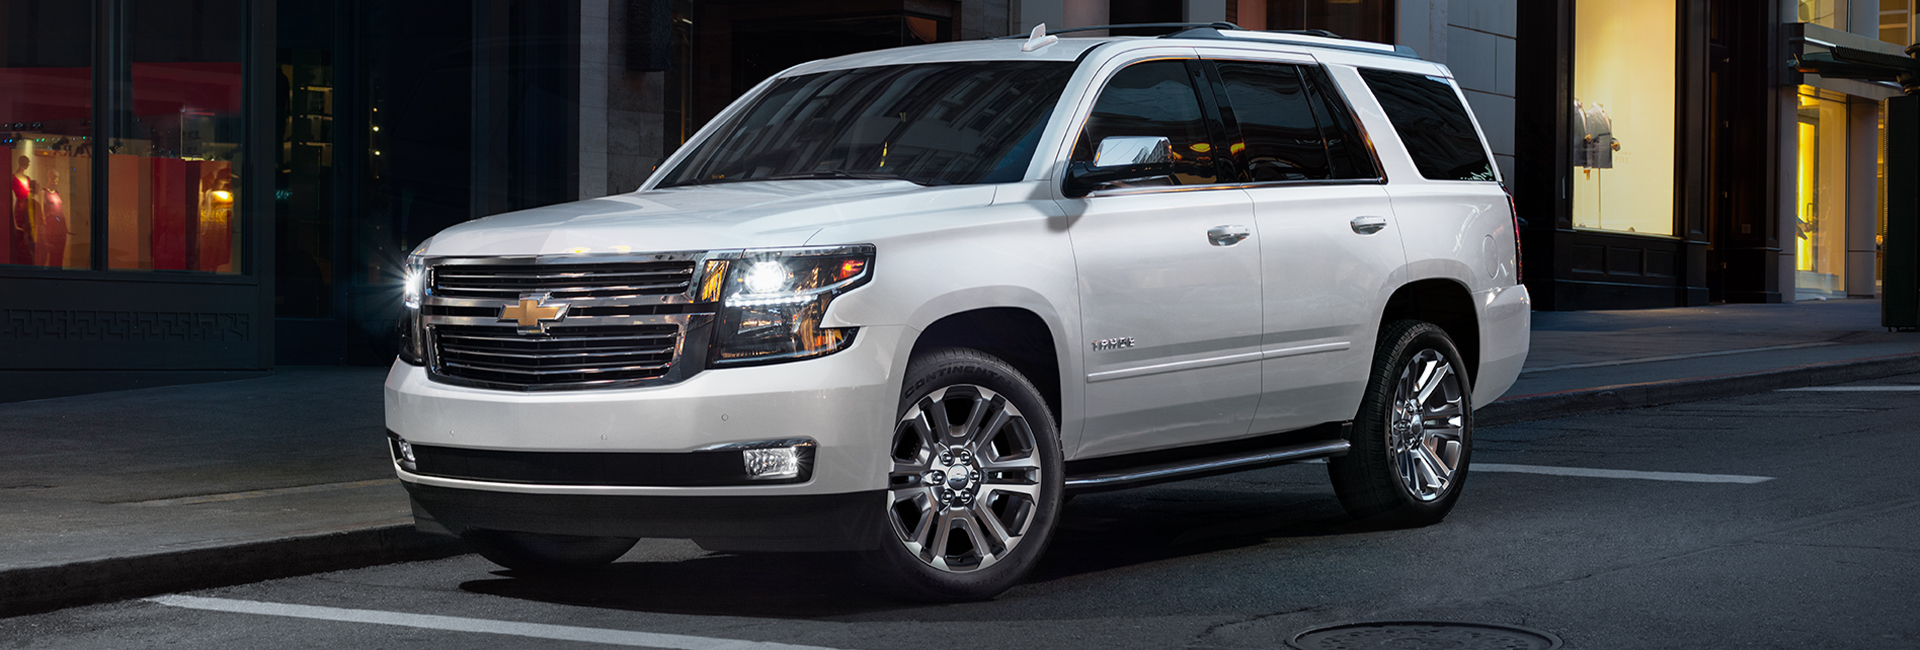 Picture of the 2020 Chevy Tahoe for sale at Spitzer Chevy of Amherst.